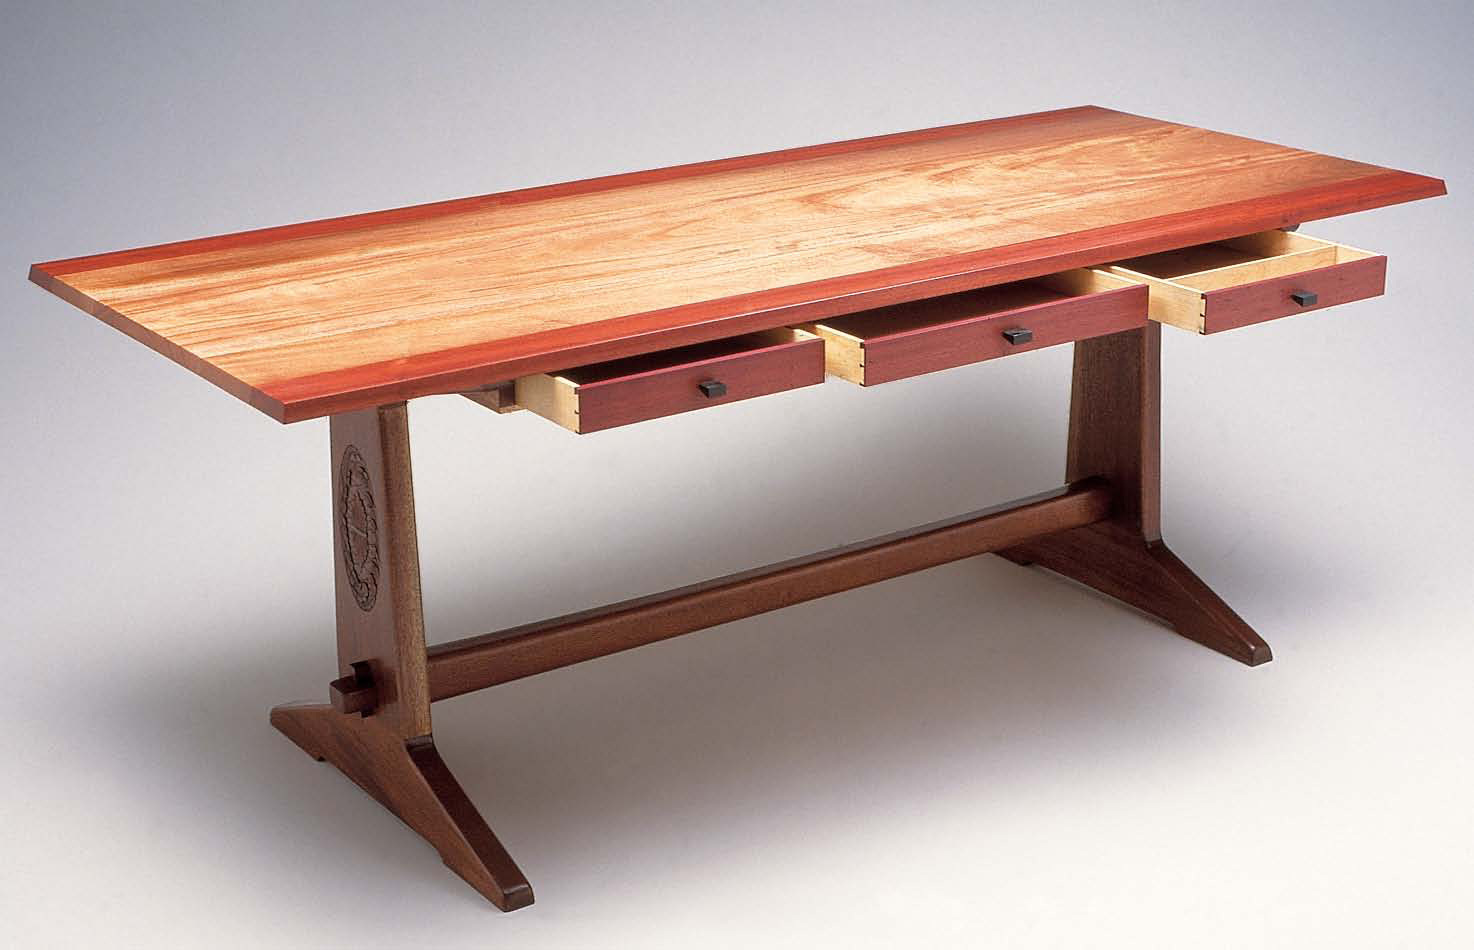 wood table designs photo - 8